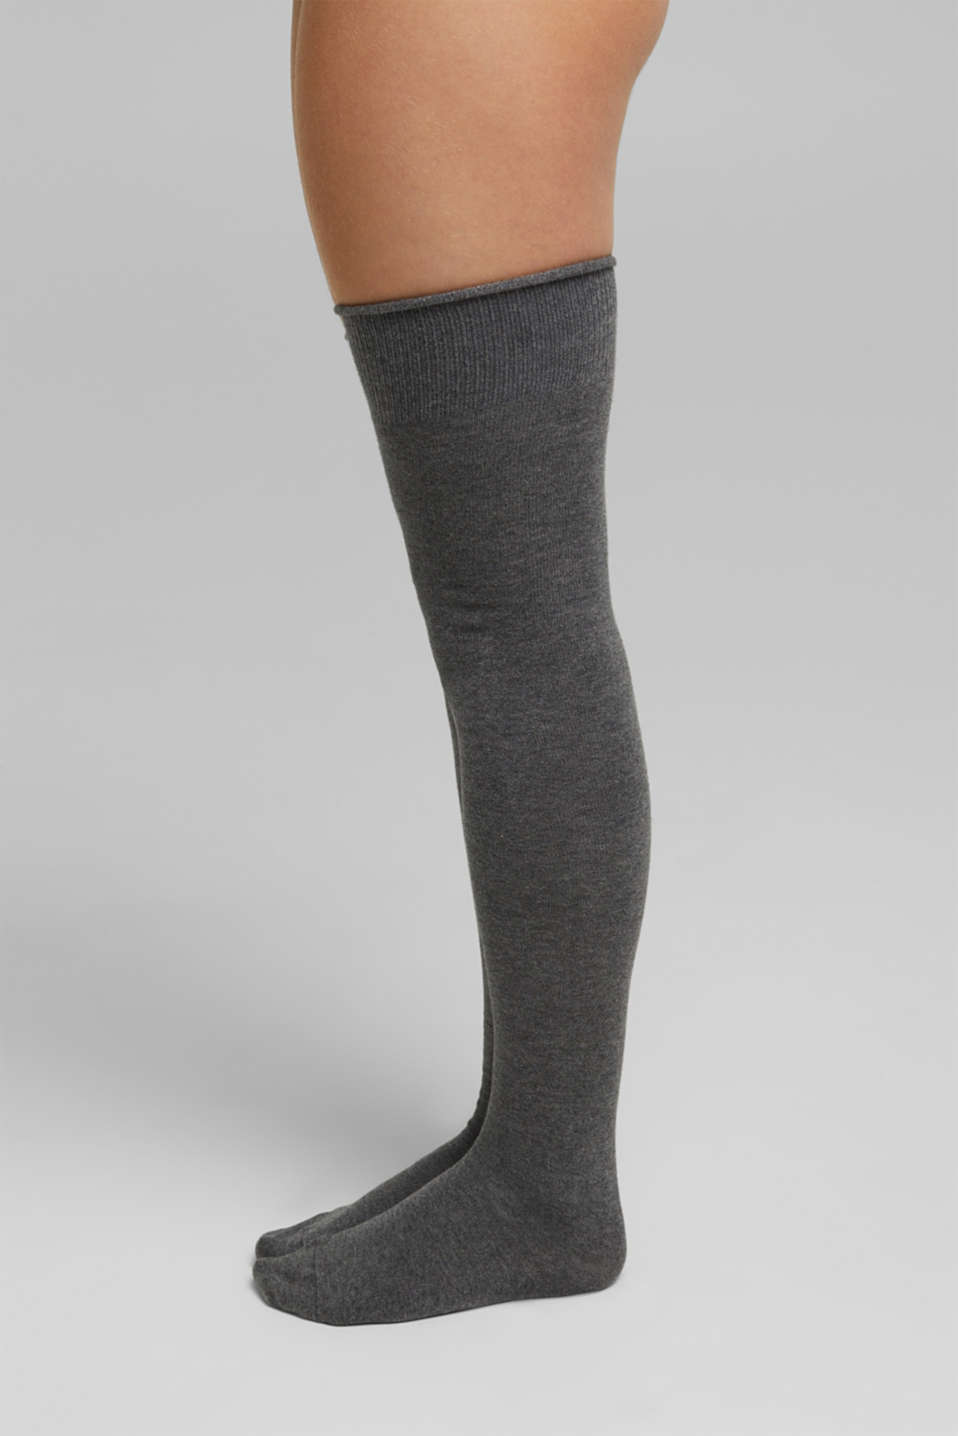 Esprit - With wool: over-the-knee with stretch for comfort